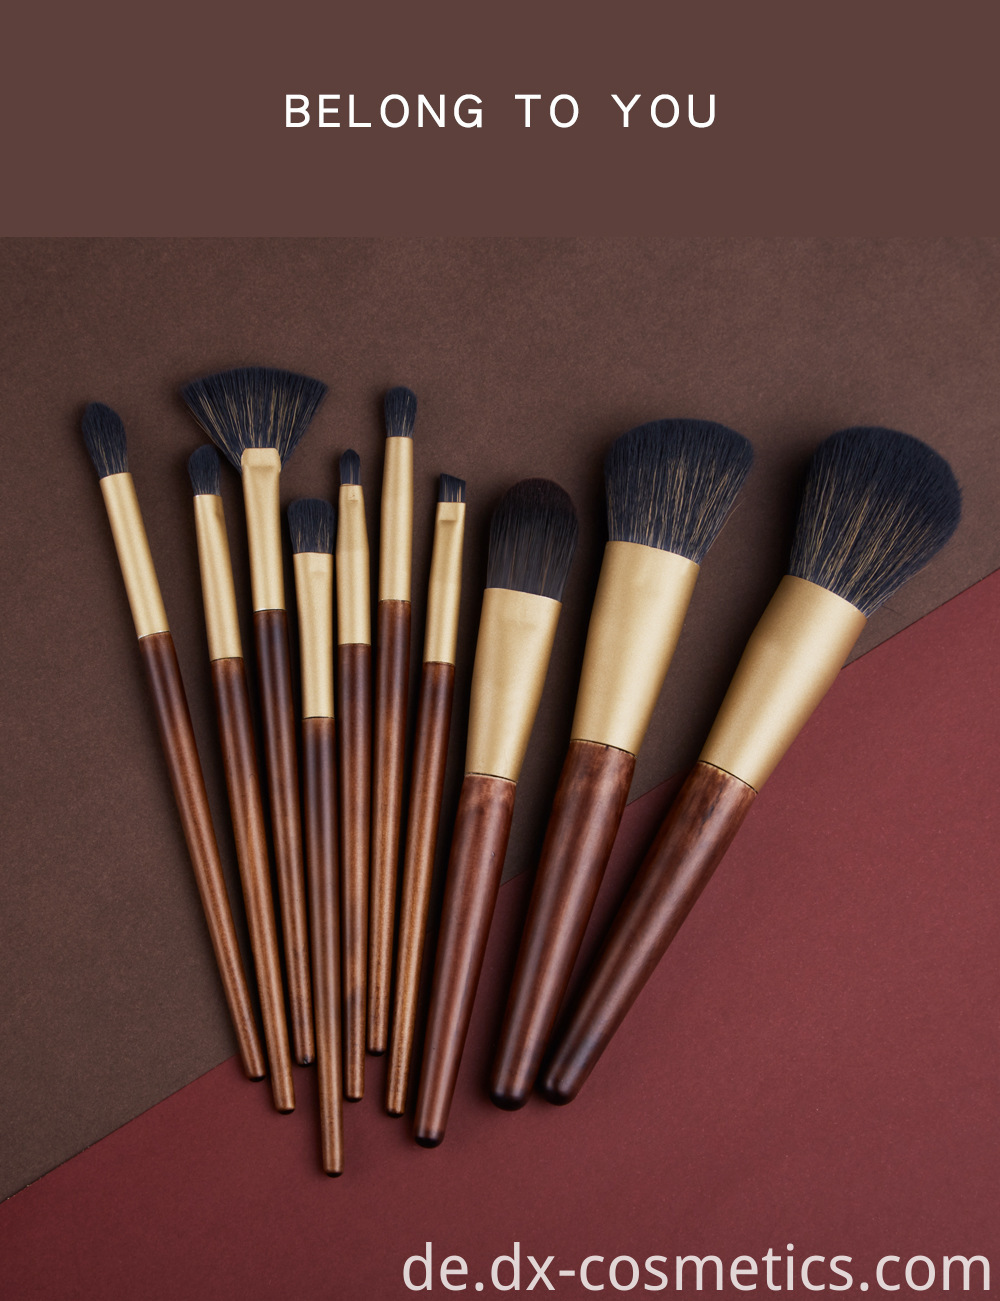 10 Pcs Wood Goat Hair Makeup Brush Sets 3